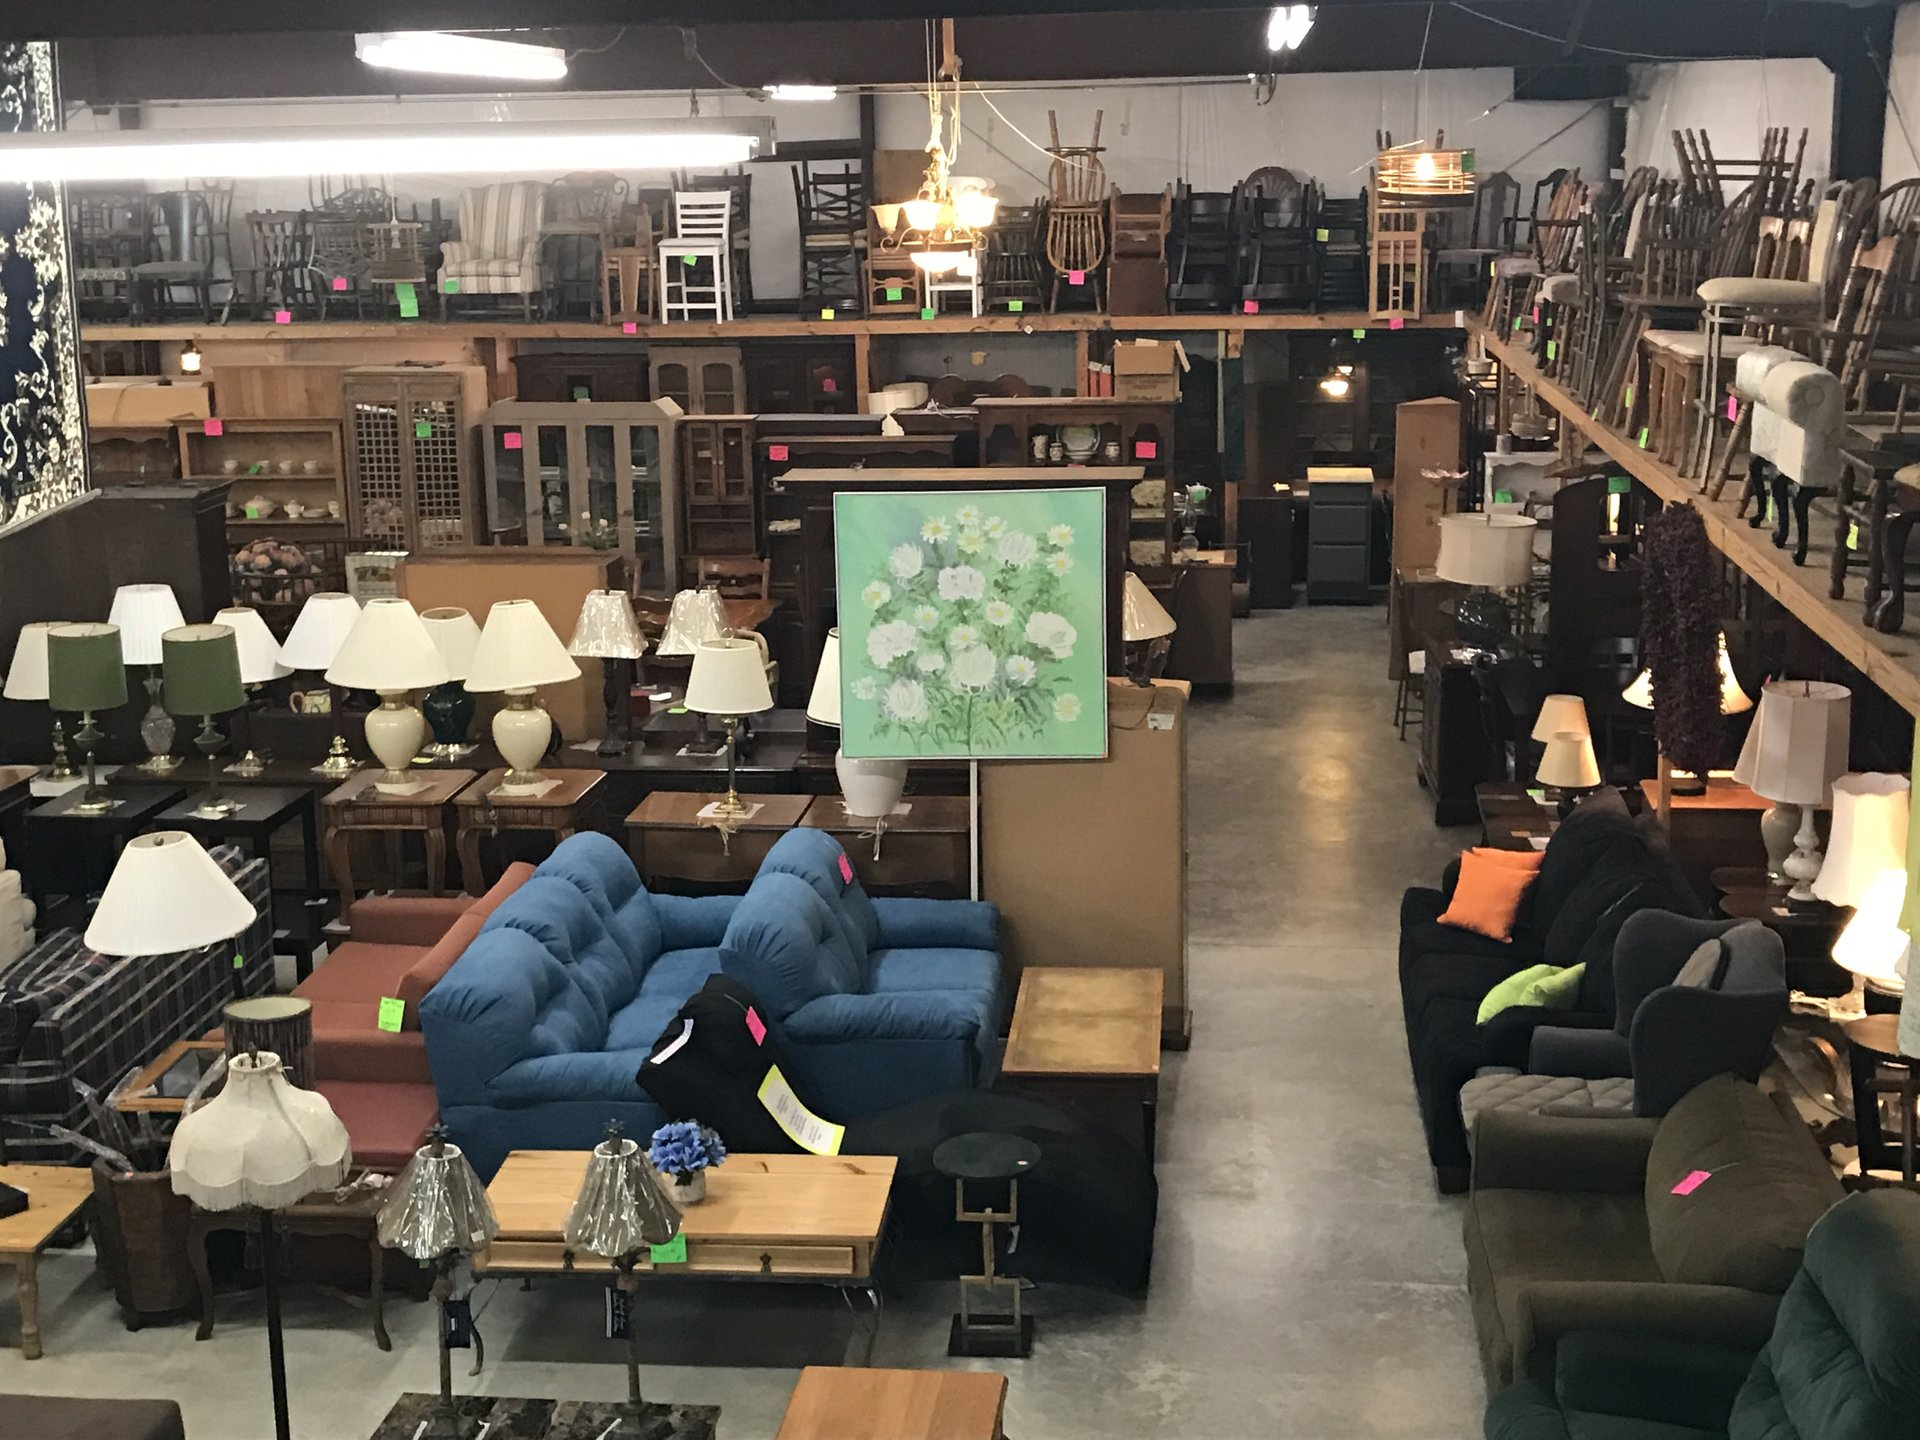 New Nearly New Thrift Shop Used Furniture Appliances In